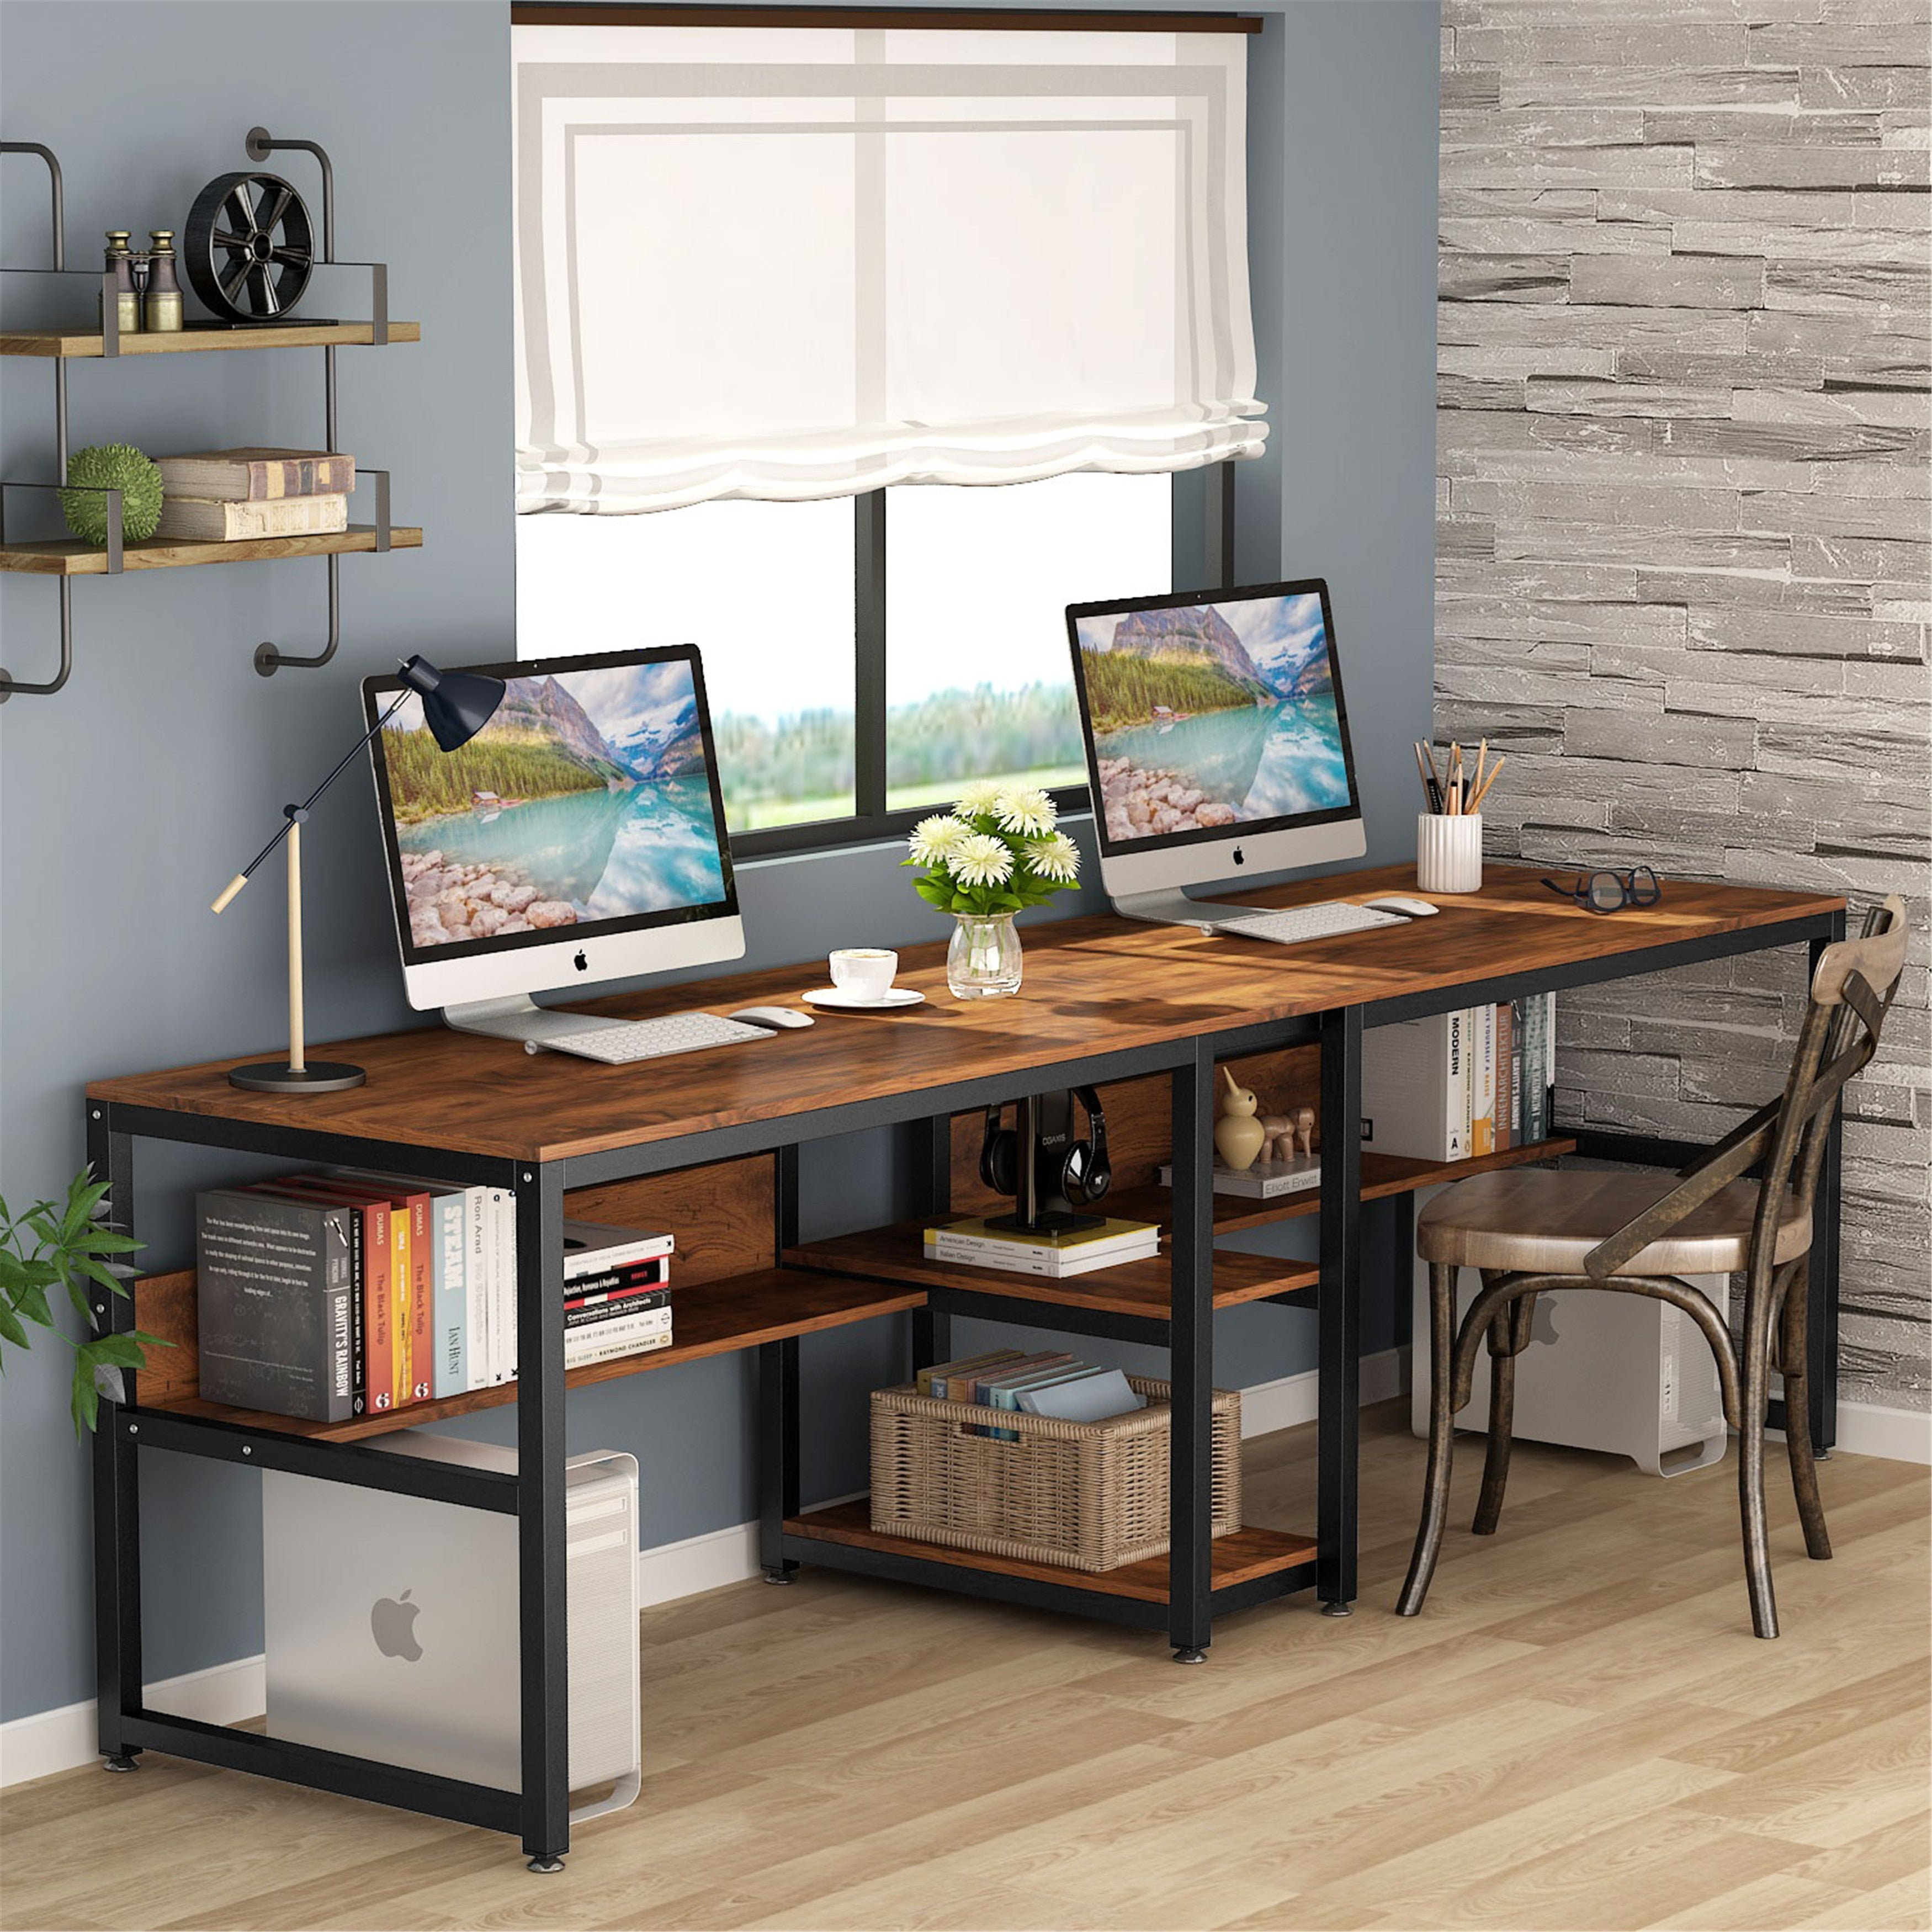 78 7 Inches Two Person Desk With Bookshelf Rustic Brown Overstock 31311915